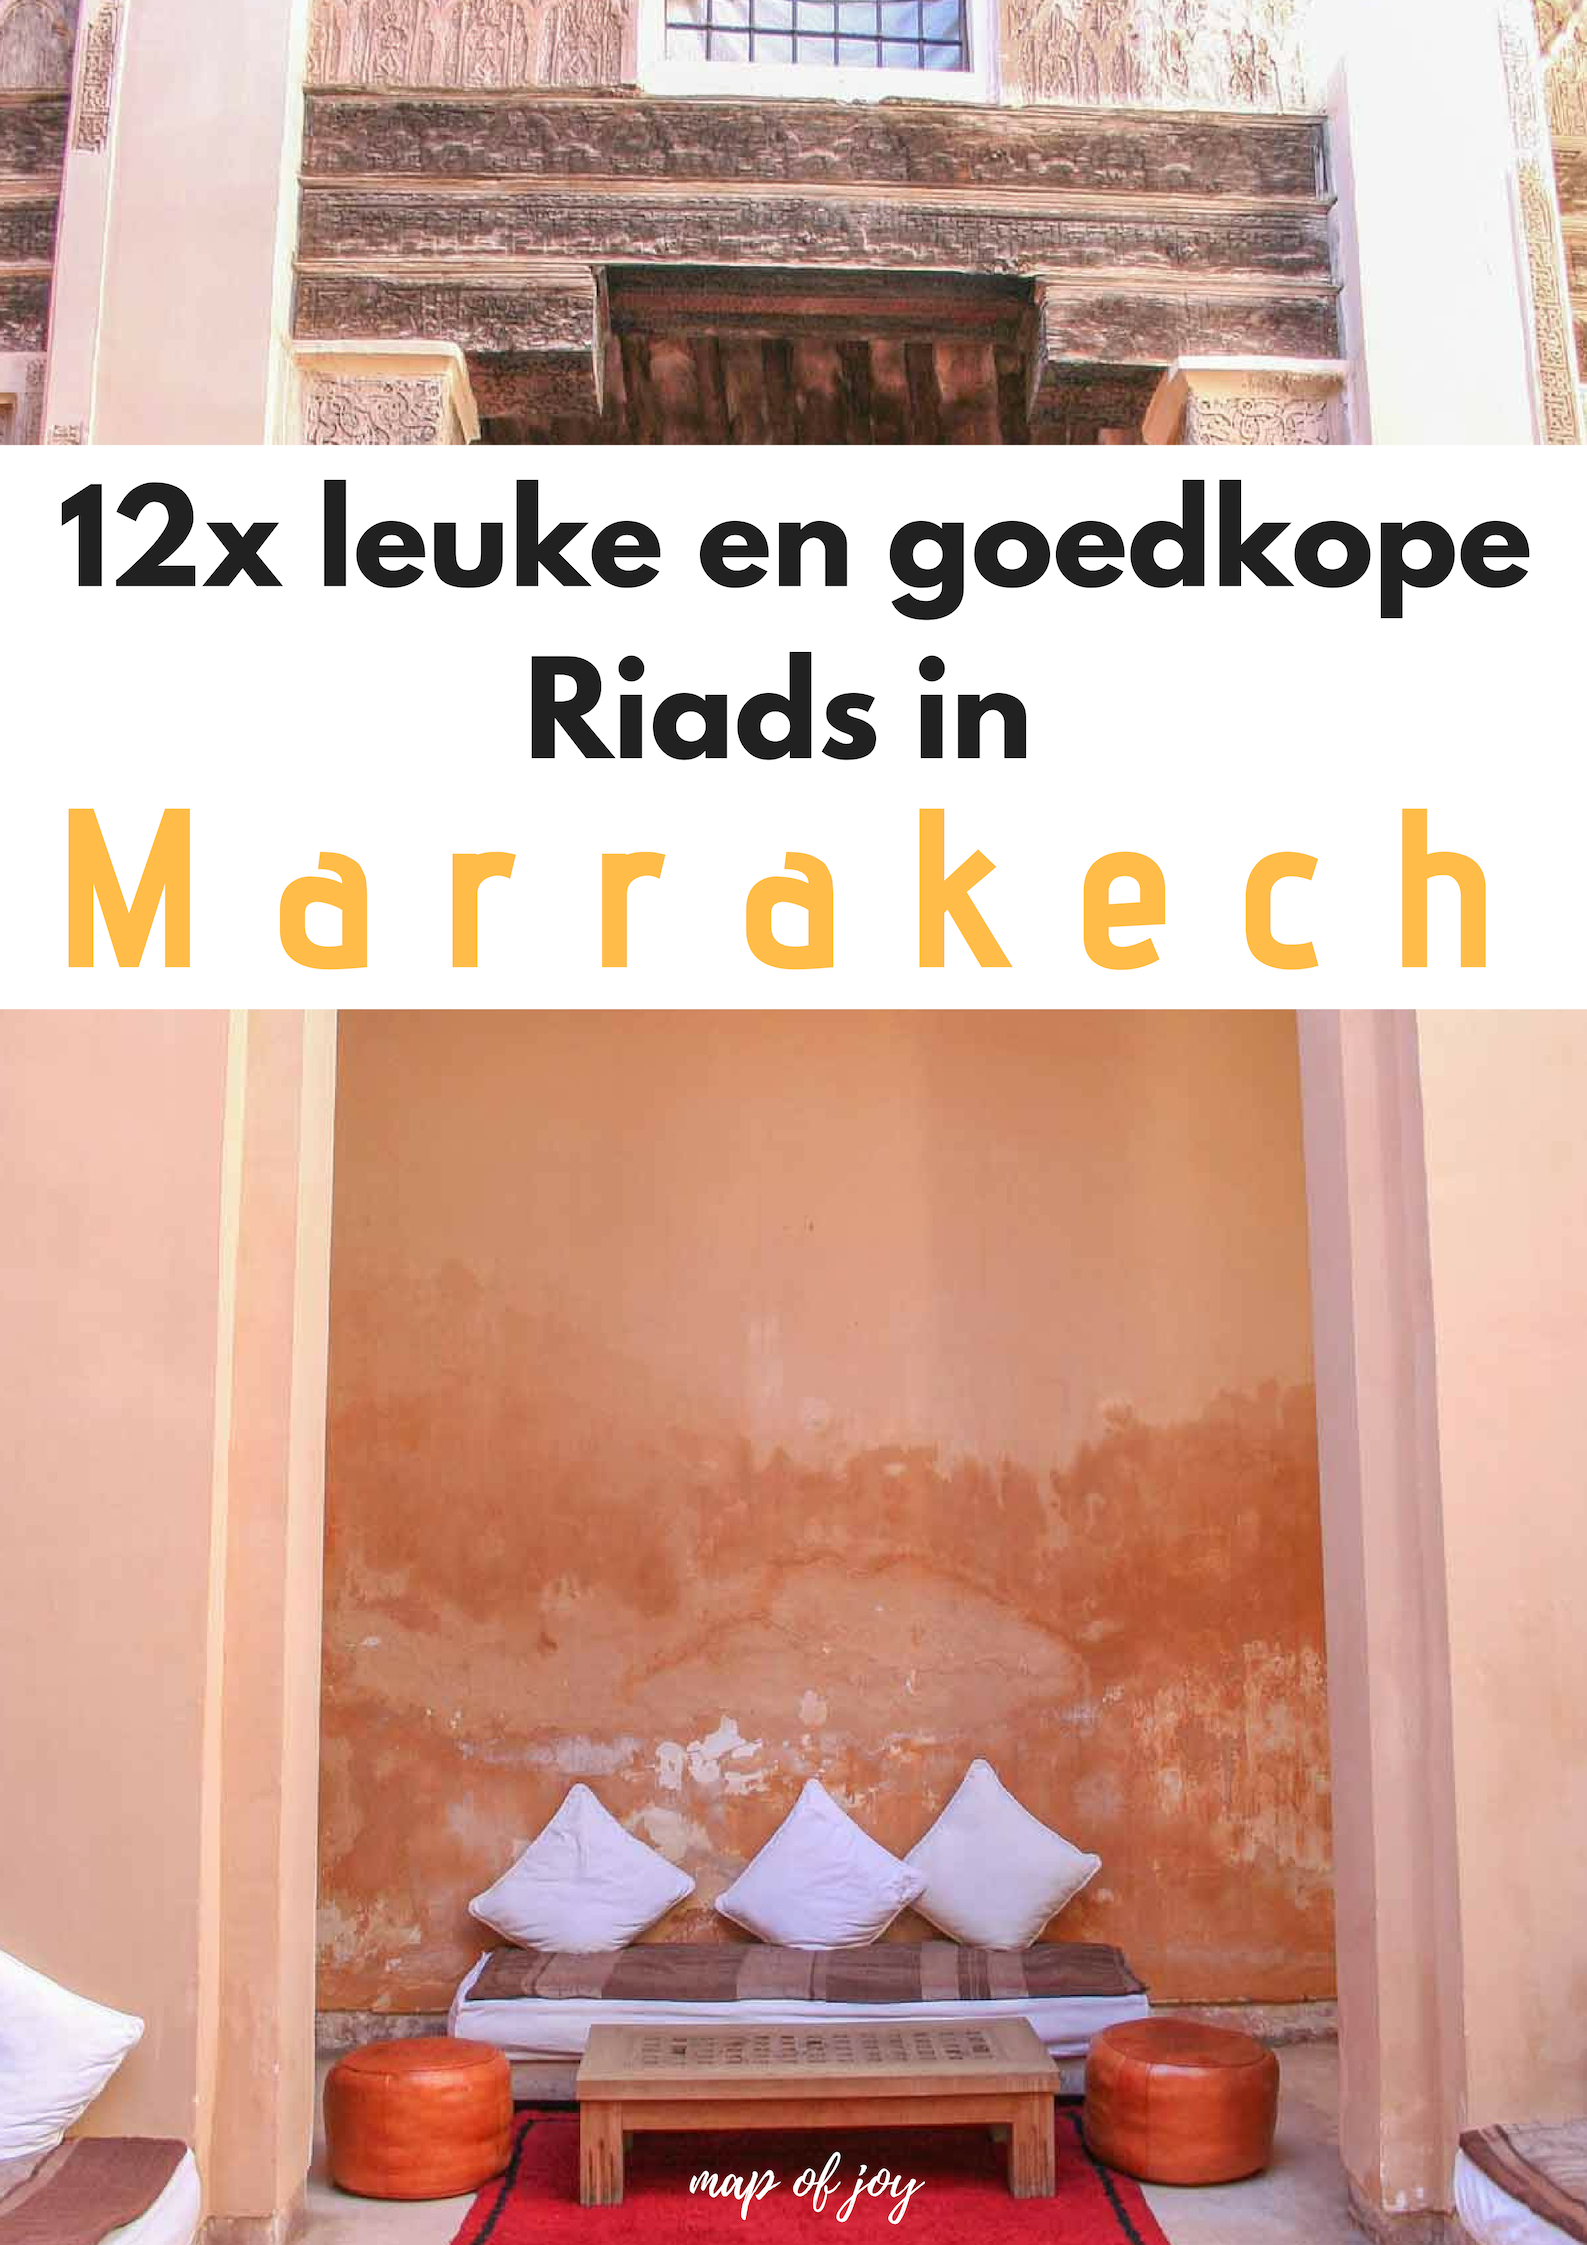 12x leuke en goedkope Riads in Marrakech - Map of Joy